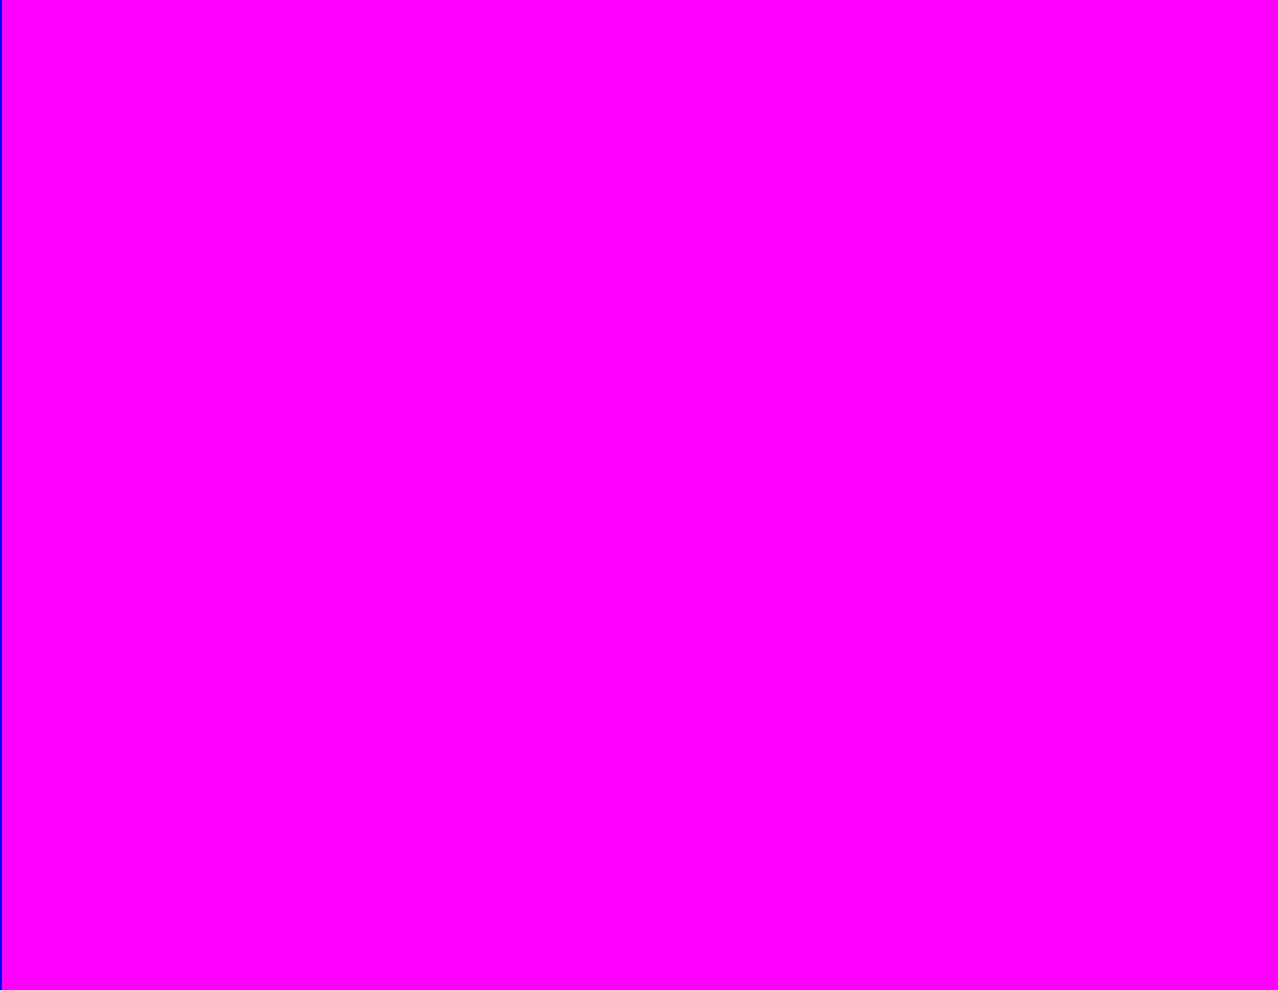 pure magenta test screen